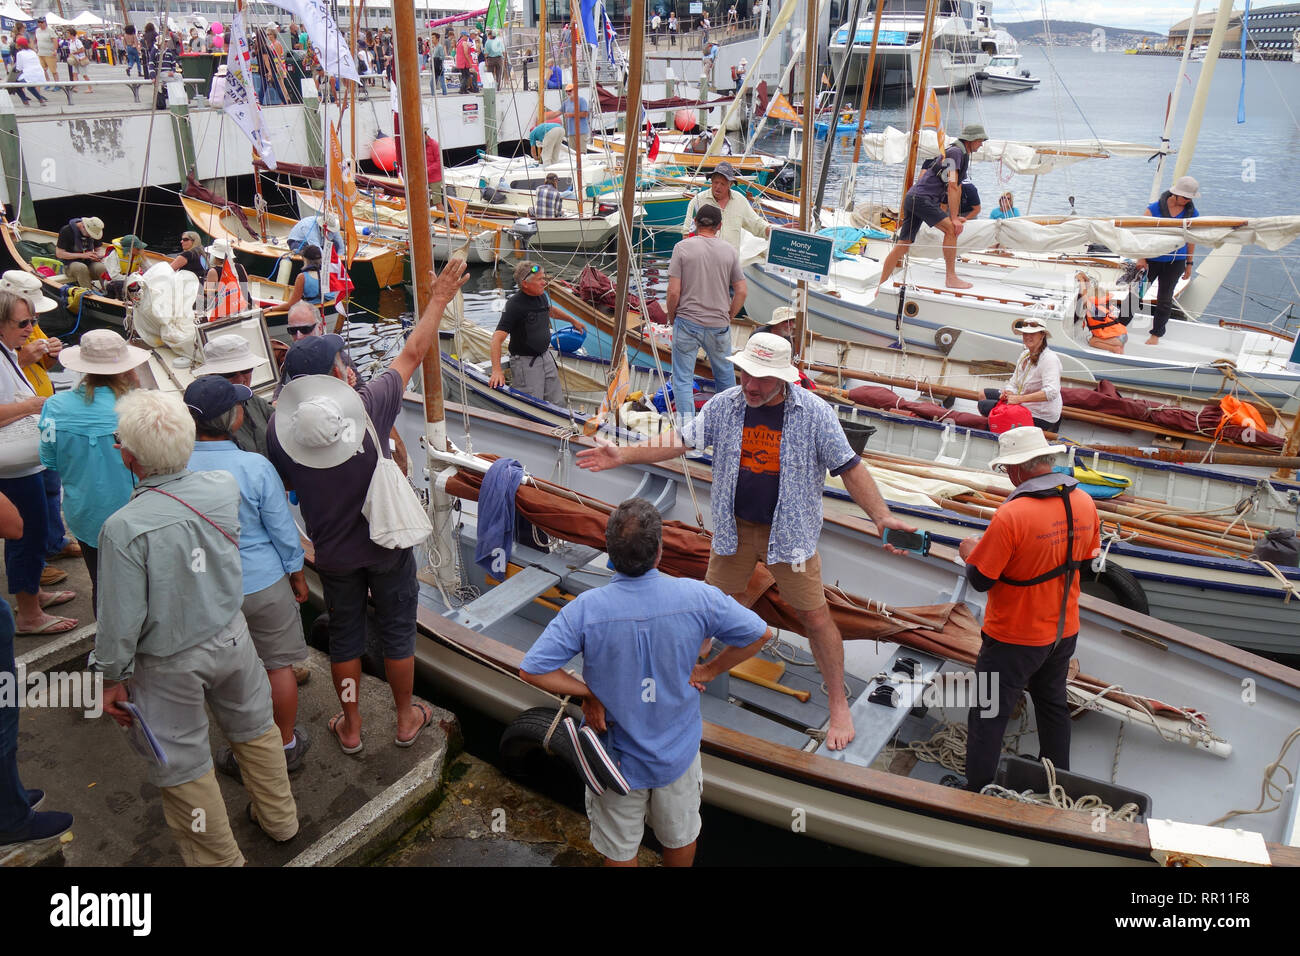 Crews Of Sailing Dinghys And Whaleboats Preparing To Leave The Dock